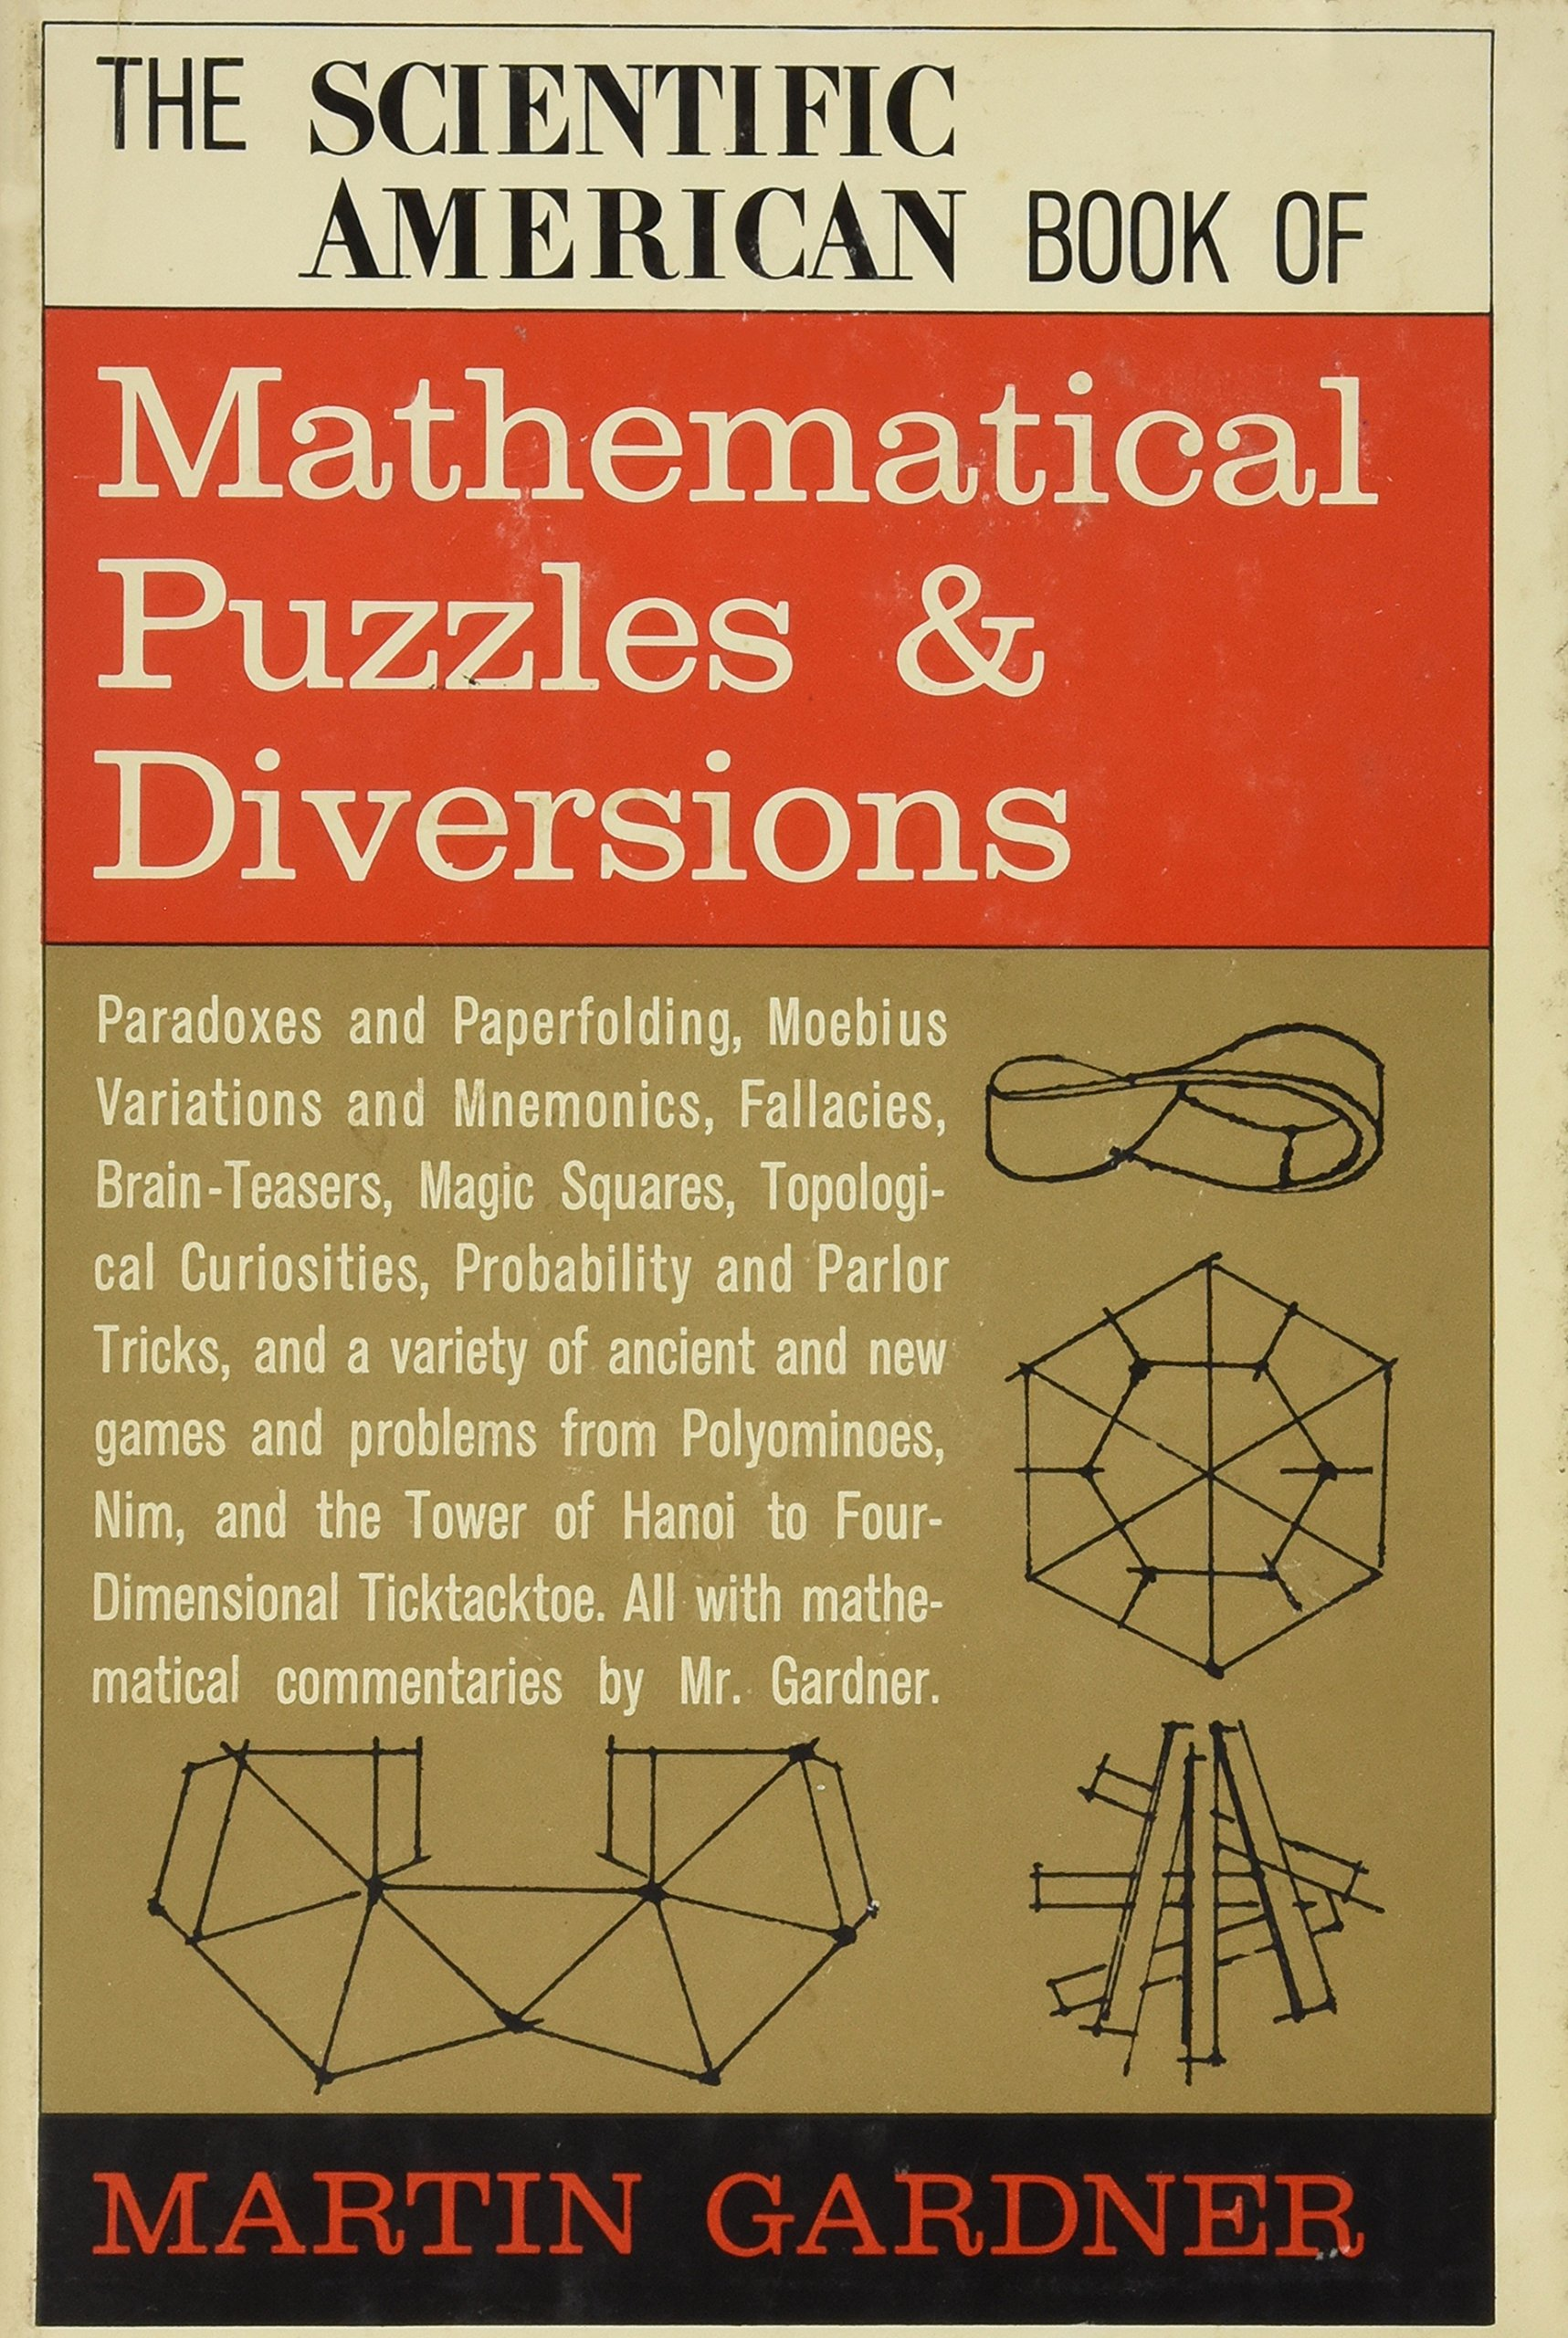 The scientific american book of mathematical puzzles diversions the scientific american book of mathematical puzzles diversions martin gardner amazon books fandeluxe Choice Image